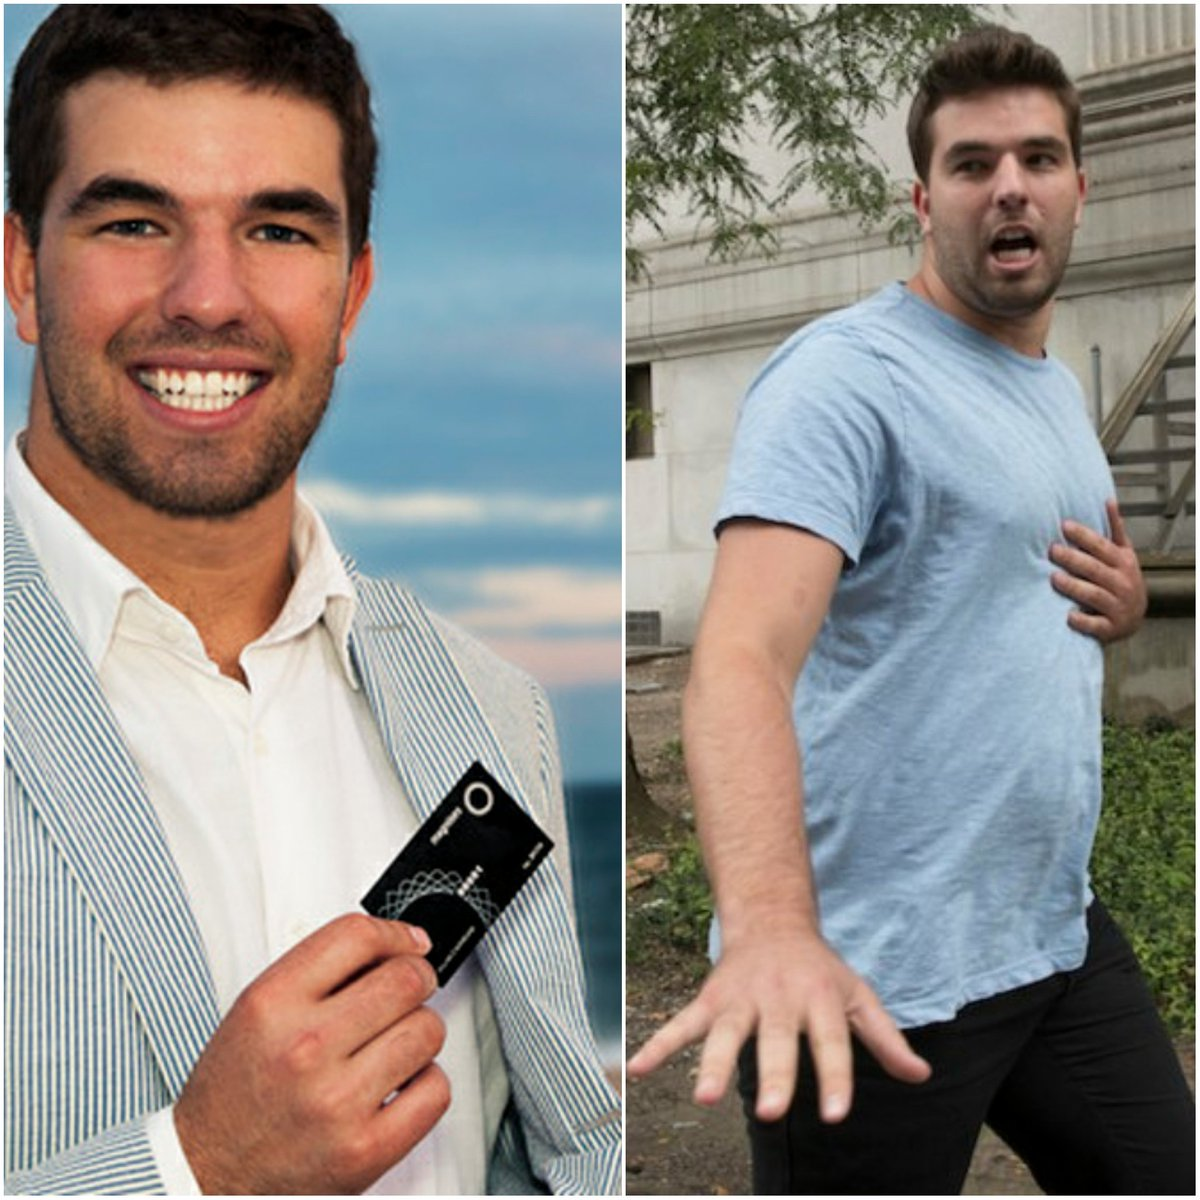 Billy McFarland: a serial fraudster, a scammer, a rogue and a phony fellow.  The fact that he was able to continue scamming people with gusto speaks volumes about privilege. <br>http://pic.twitter.com/hiUSWXcZCQ